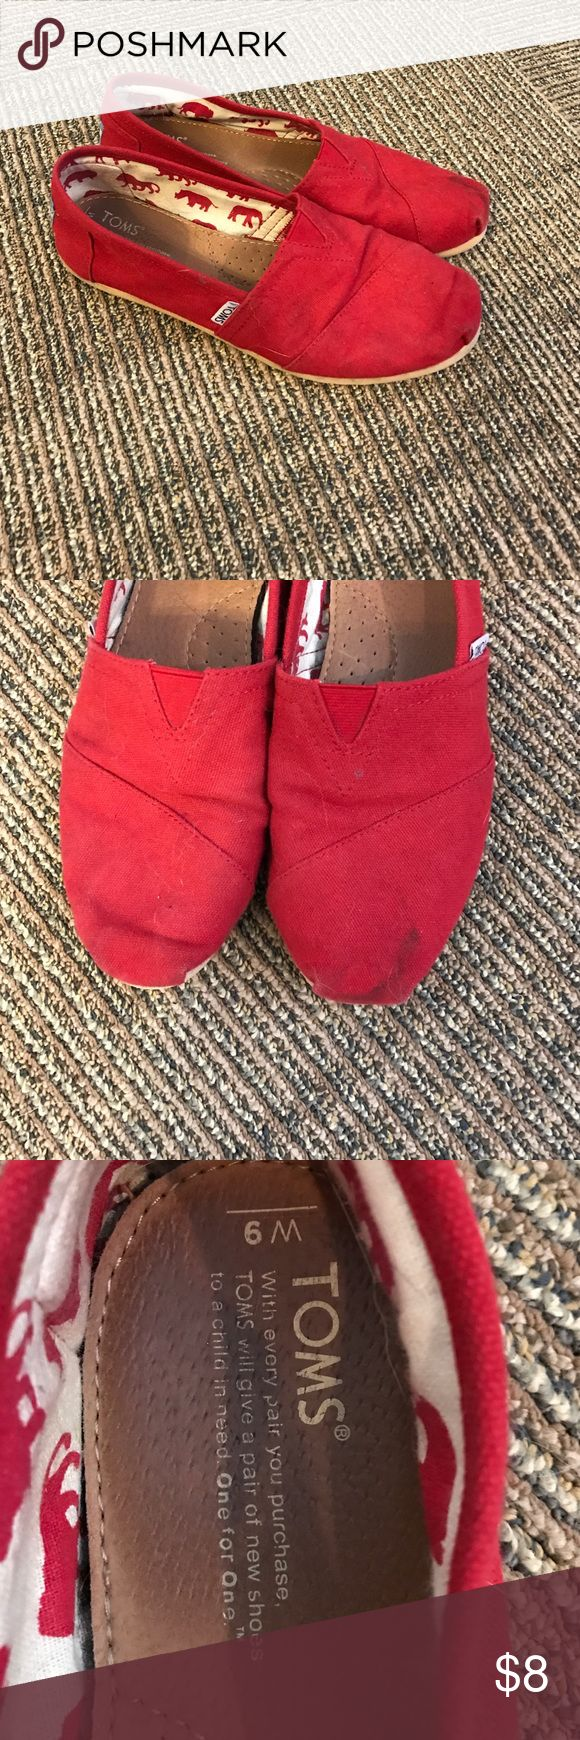 TOMS Worn Red TOMS.  Broken in, worn, small black stain on tip of left shoe TOMS Shoes Flats & Loafers